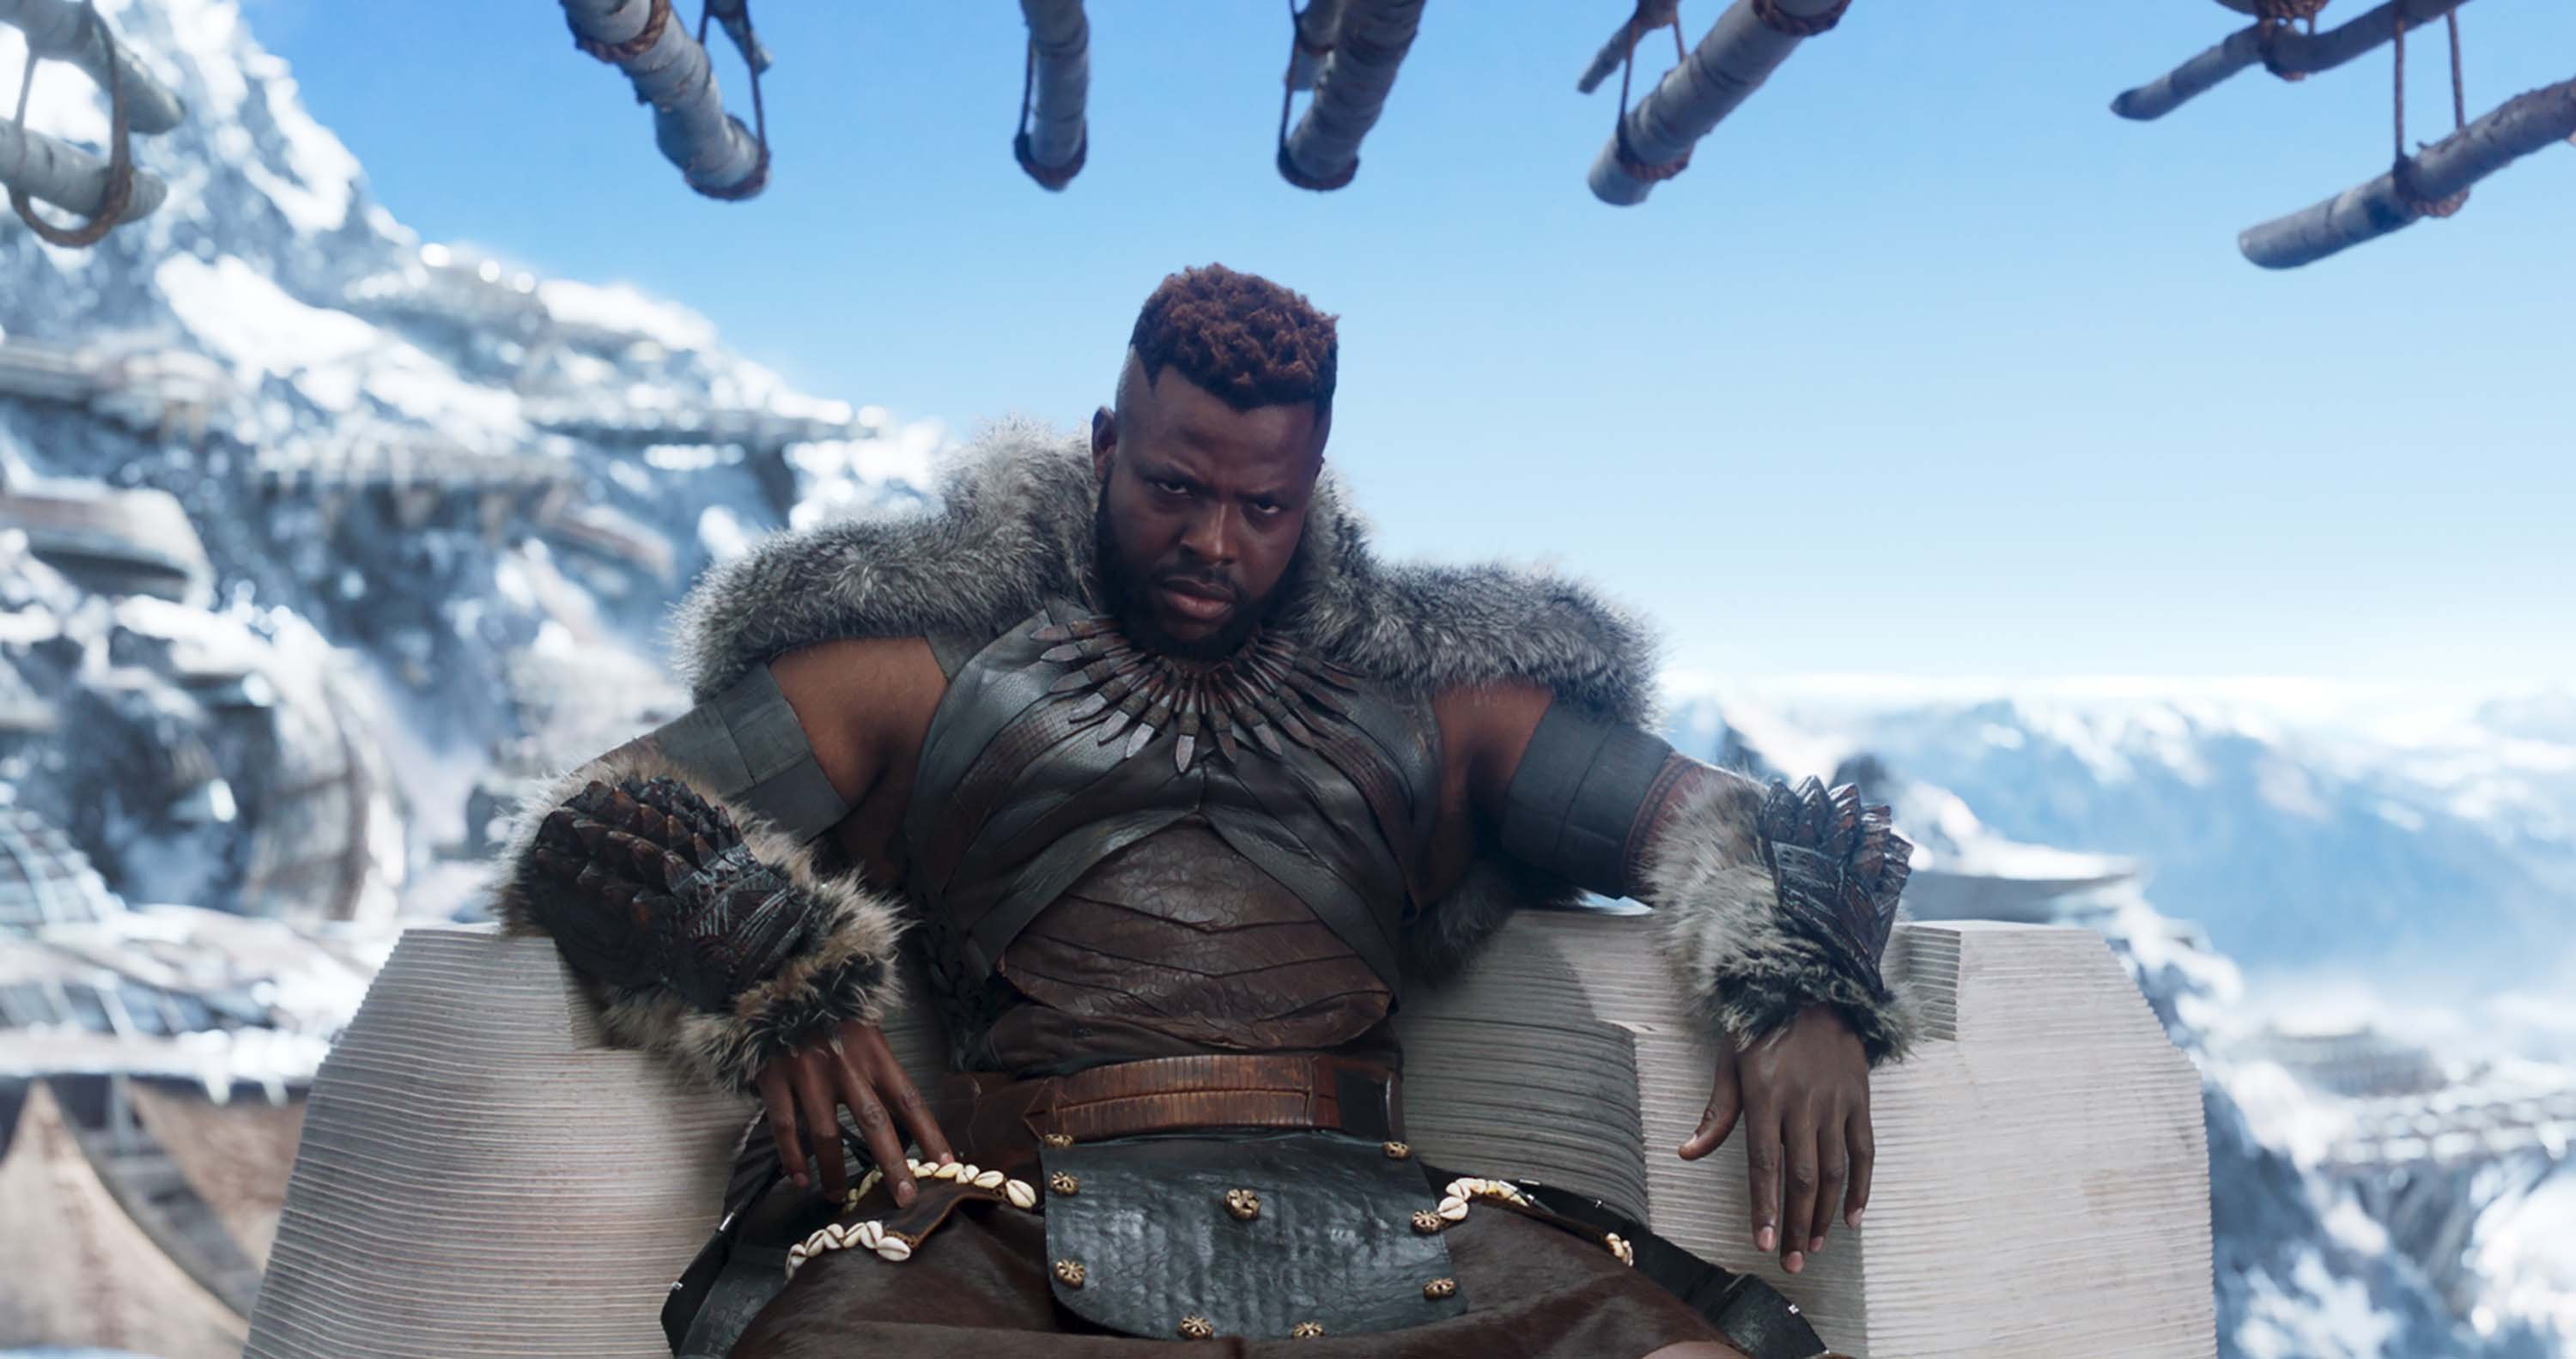 More people have tweeted about 'Black Panther' than any other movie, ever